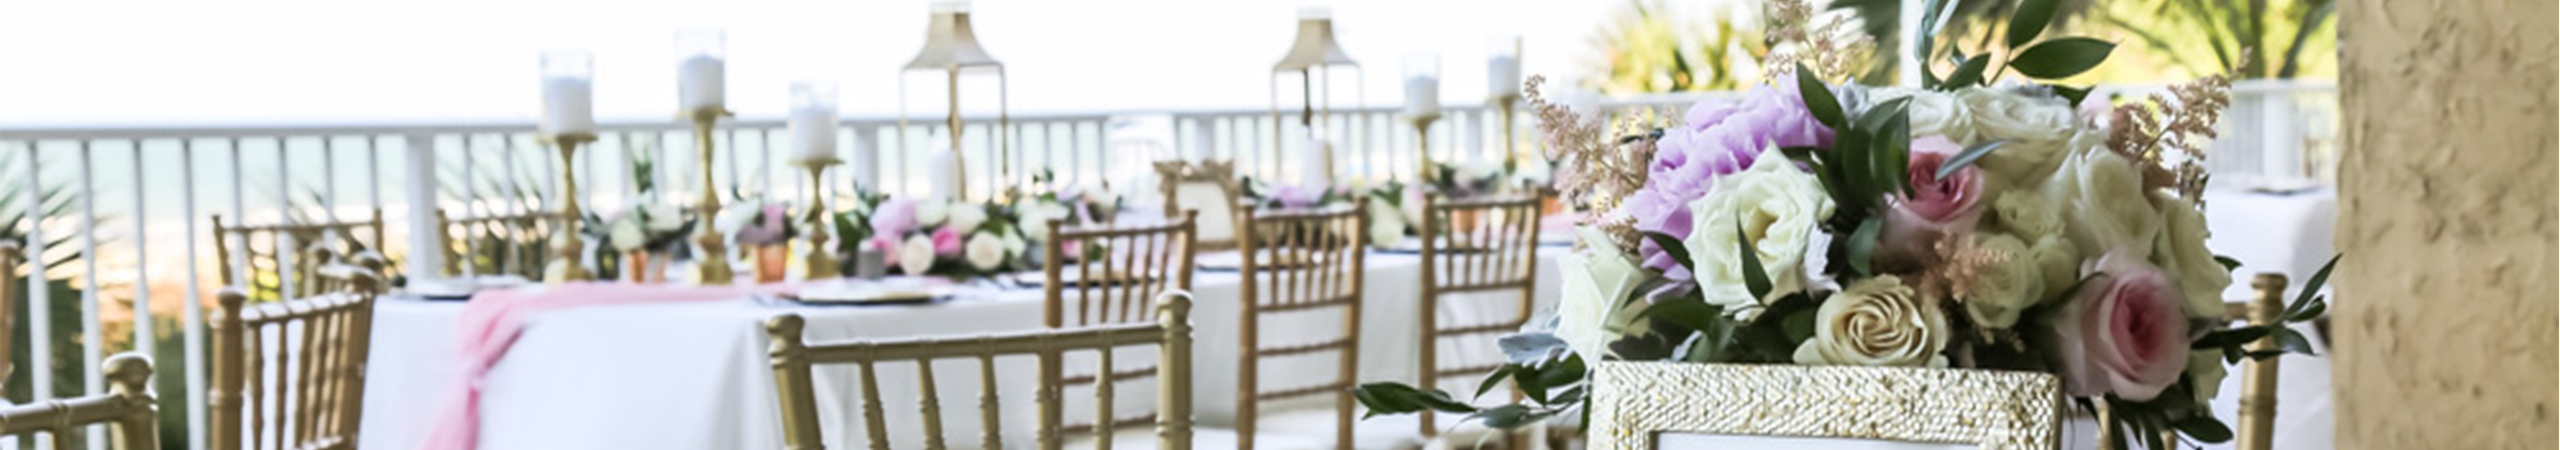 Omni Amelia Island Plantation Wedding